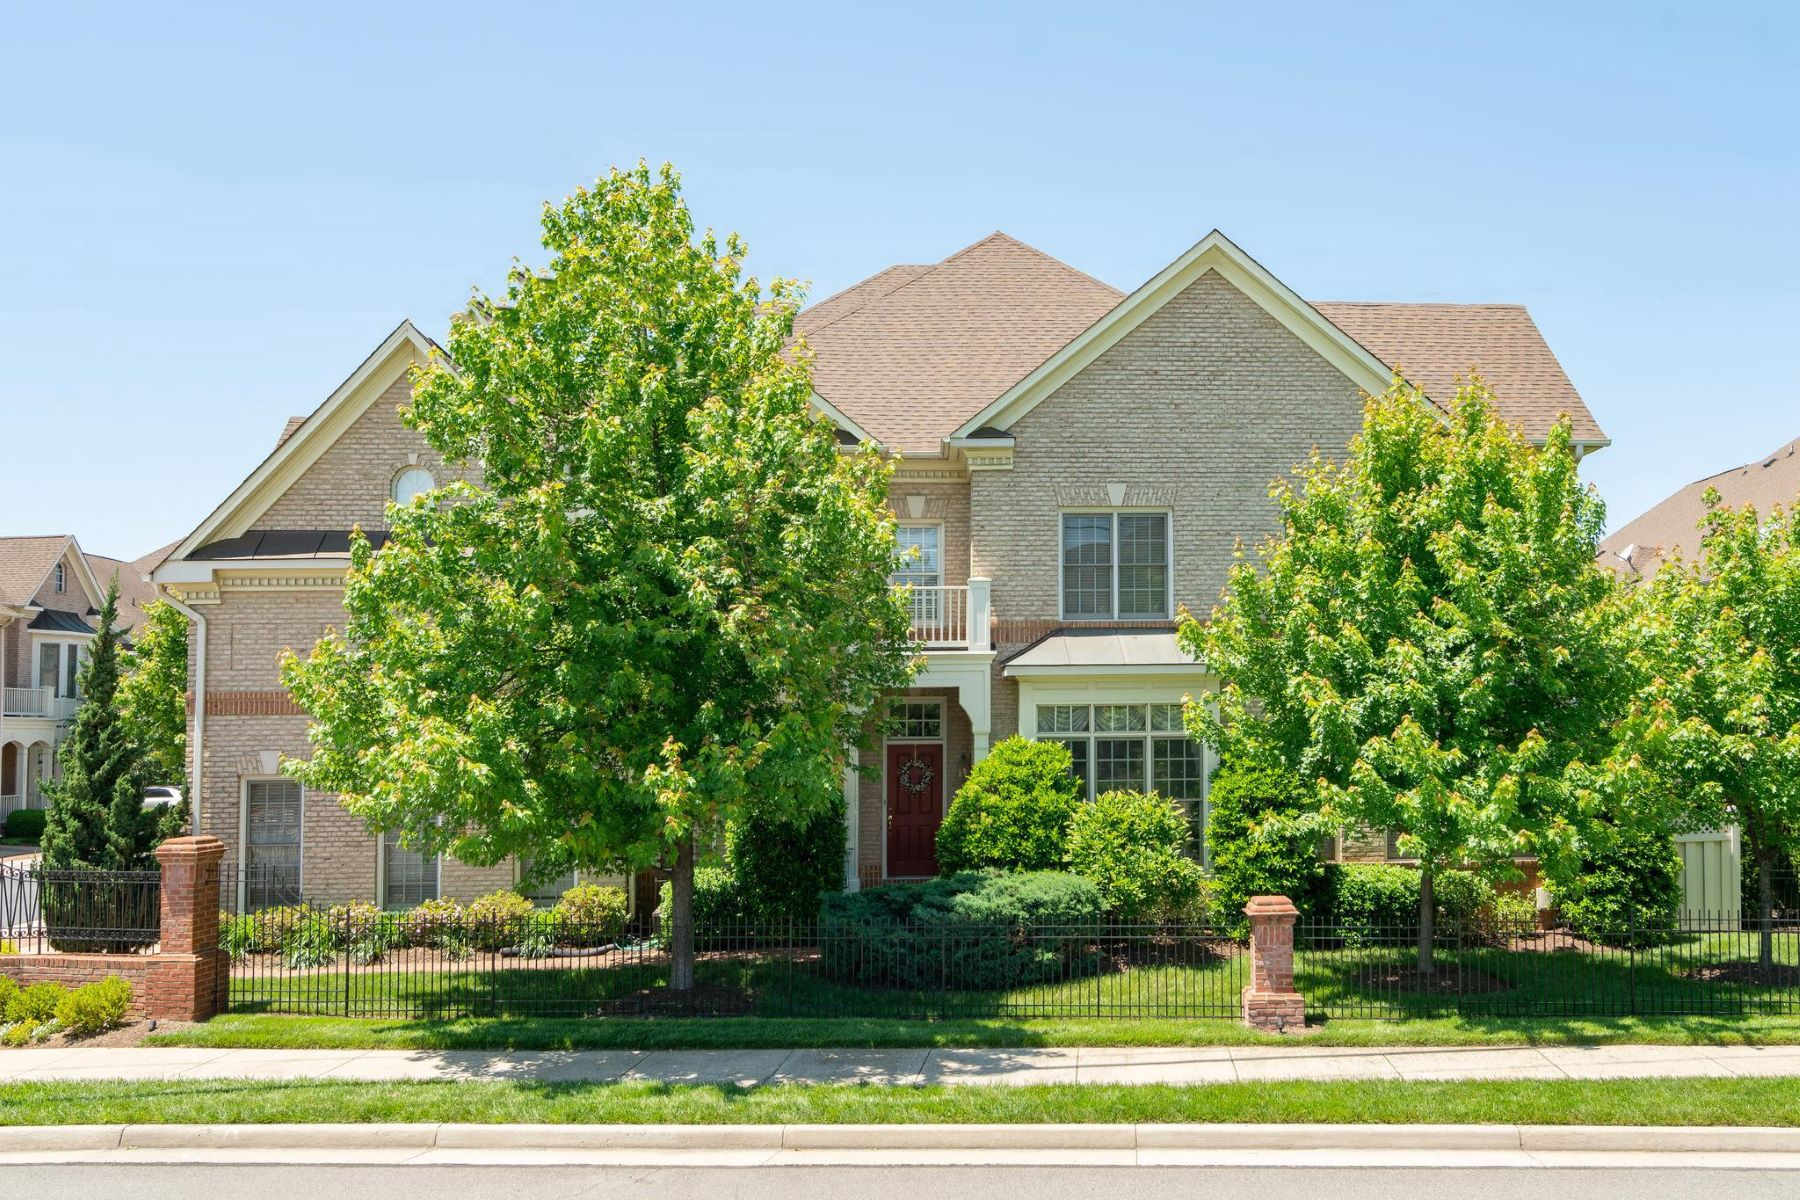 Other Residential for Sale at 12730 Lavender Keep Cir 12730 Lavender Keep Cir Fairfax, Virginia 22033 United States